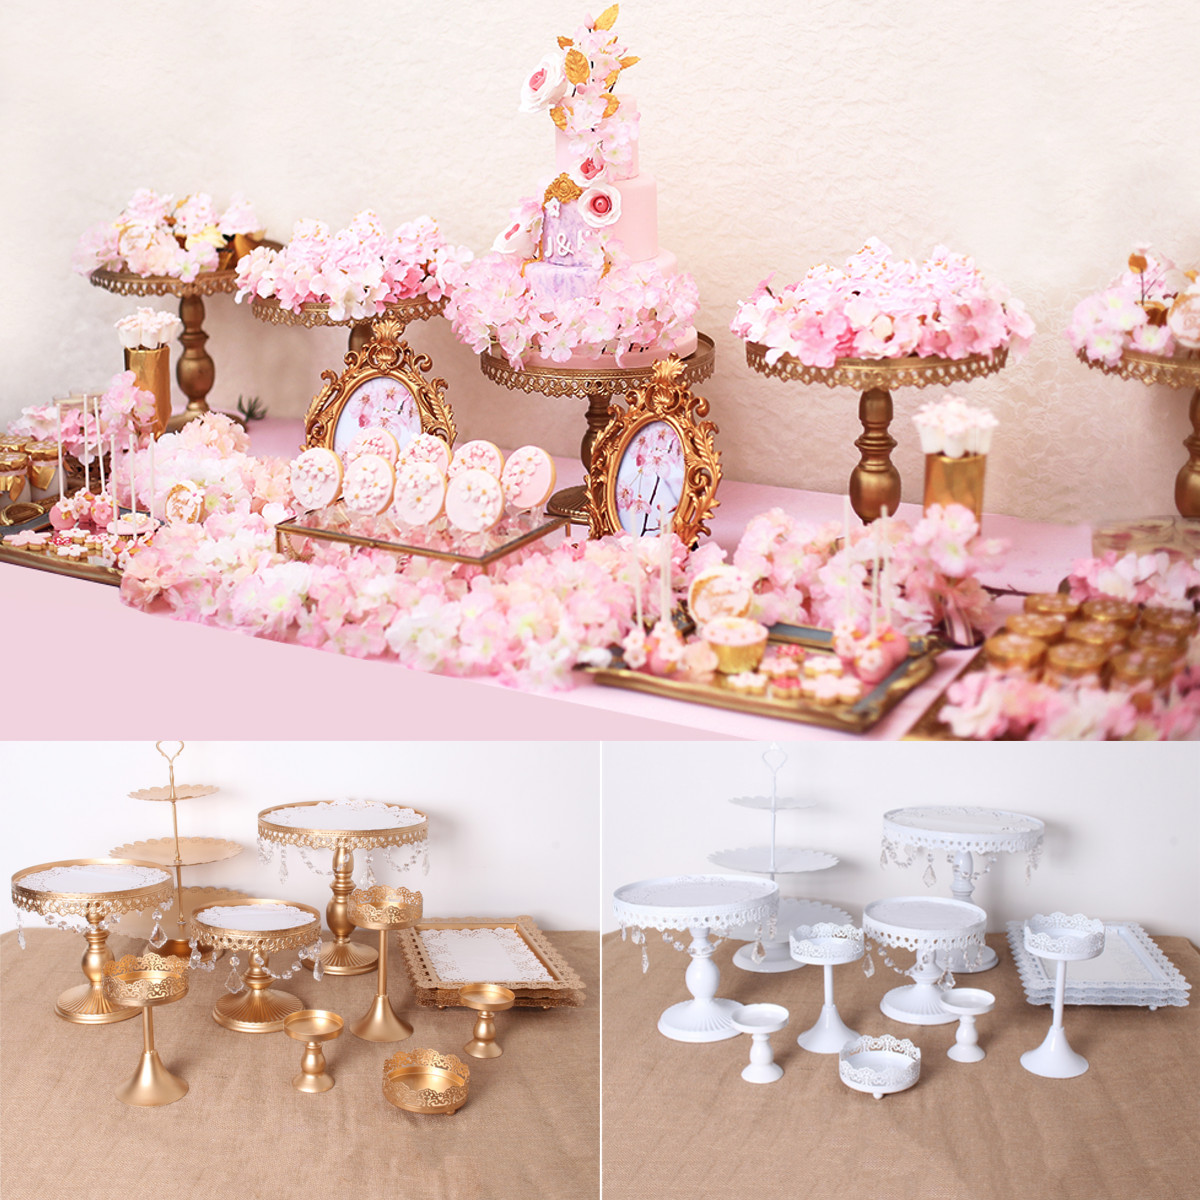 12Pcs Crystal Metal Cake Holder Cupcake Stand Birthday Wedding Party Display Specials